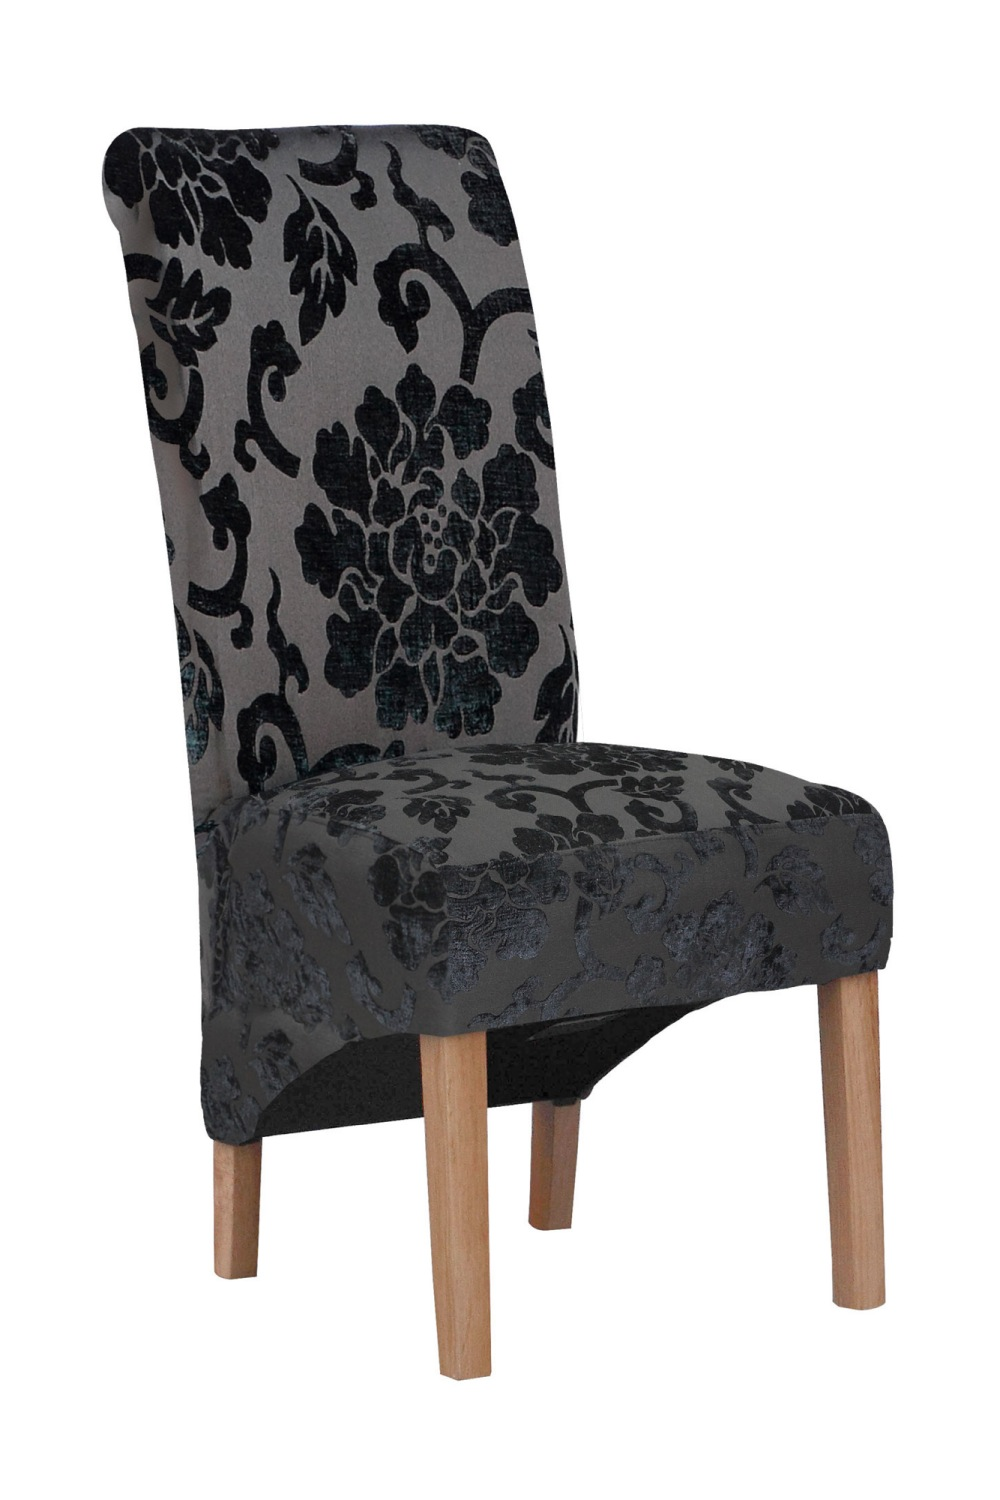 village green krista baroque leather chair